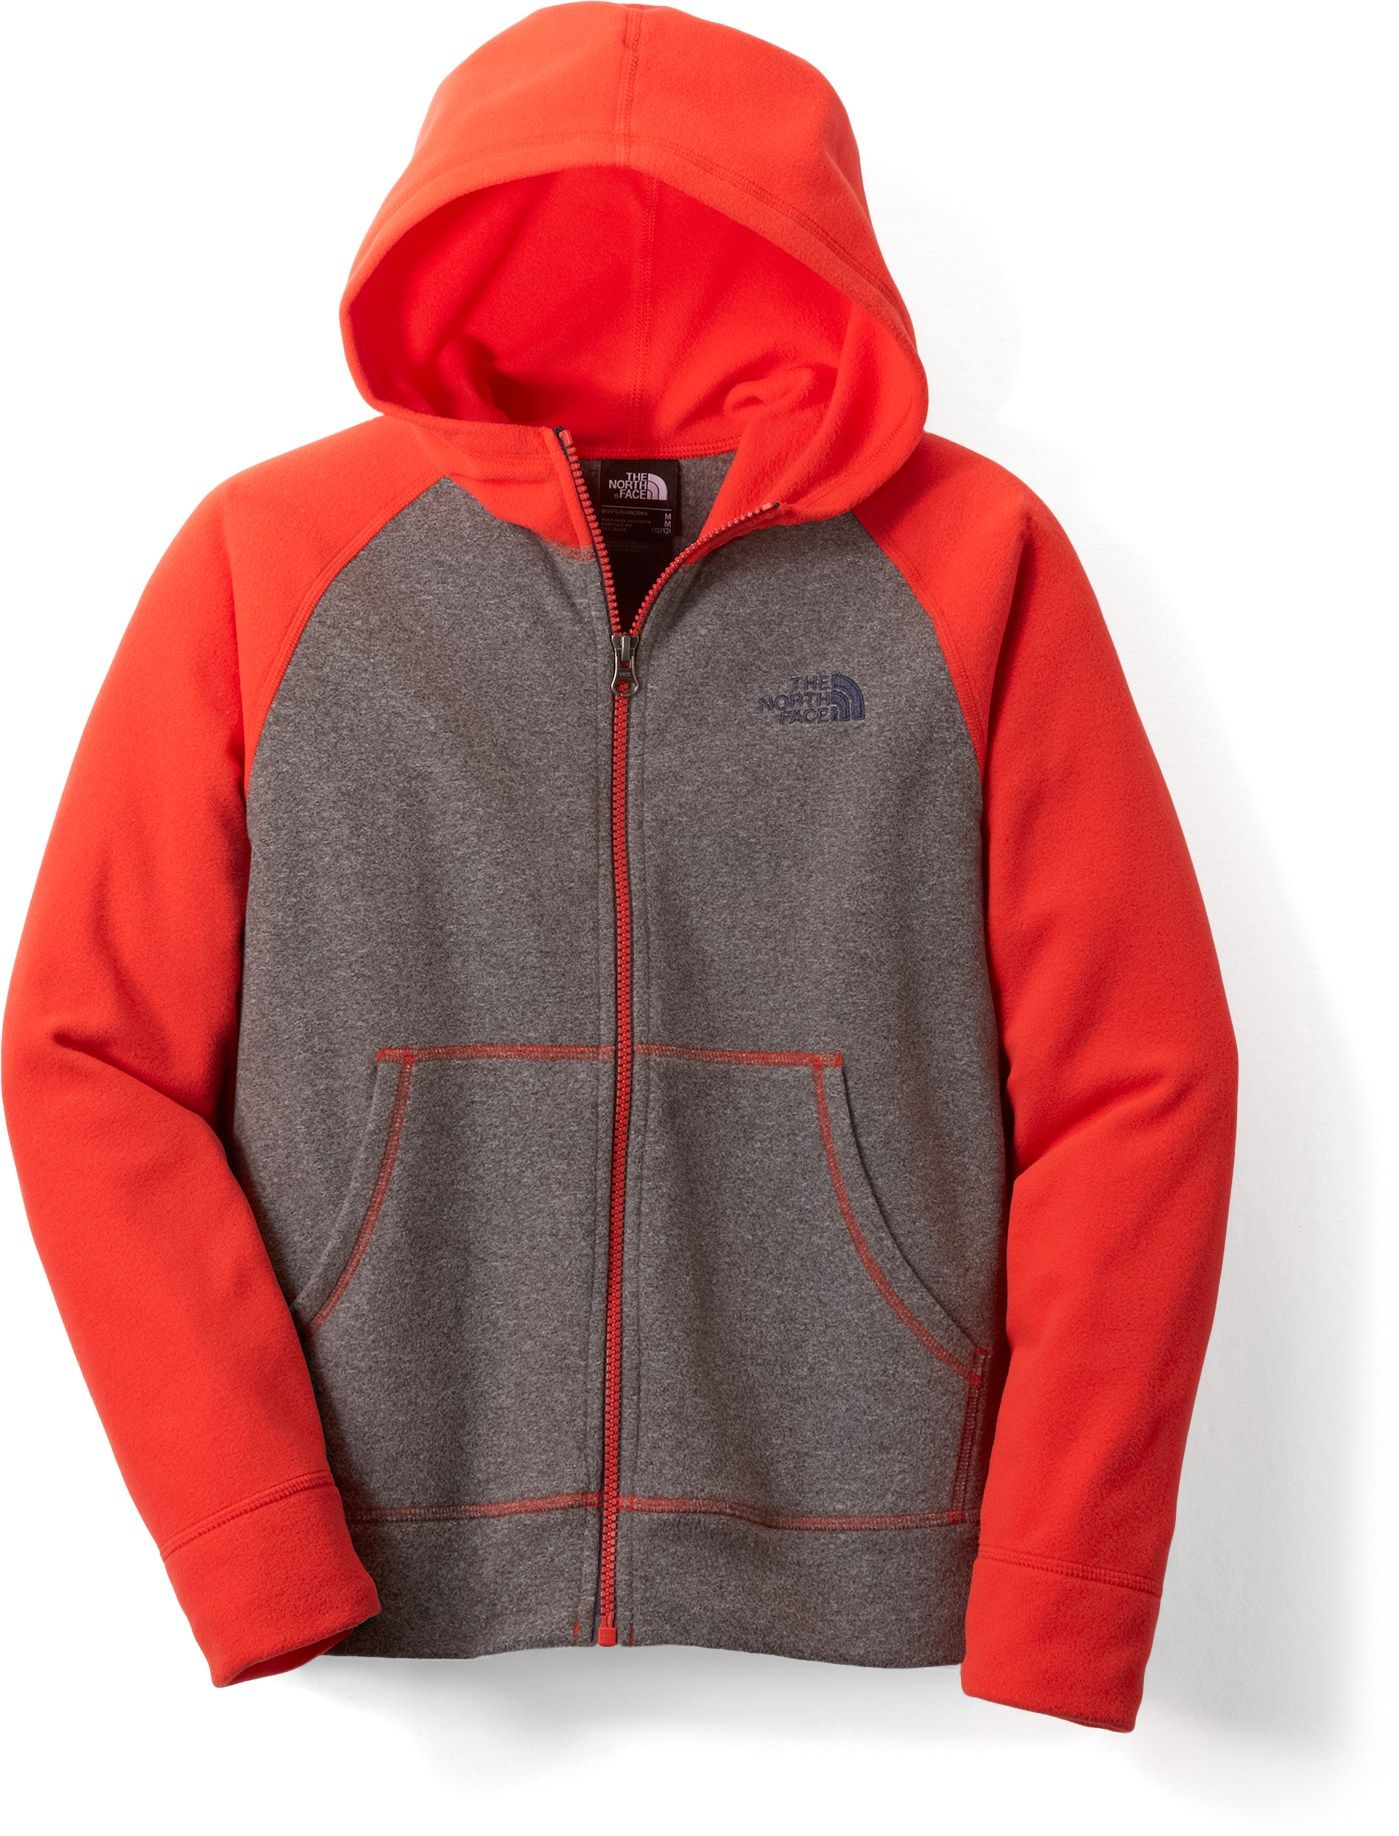 The North Face Male Glacier Full-Zip Hoodie - Boys'